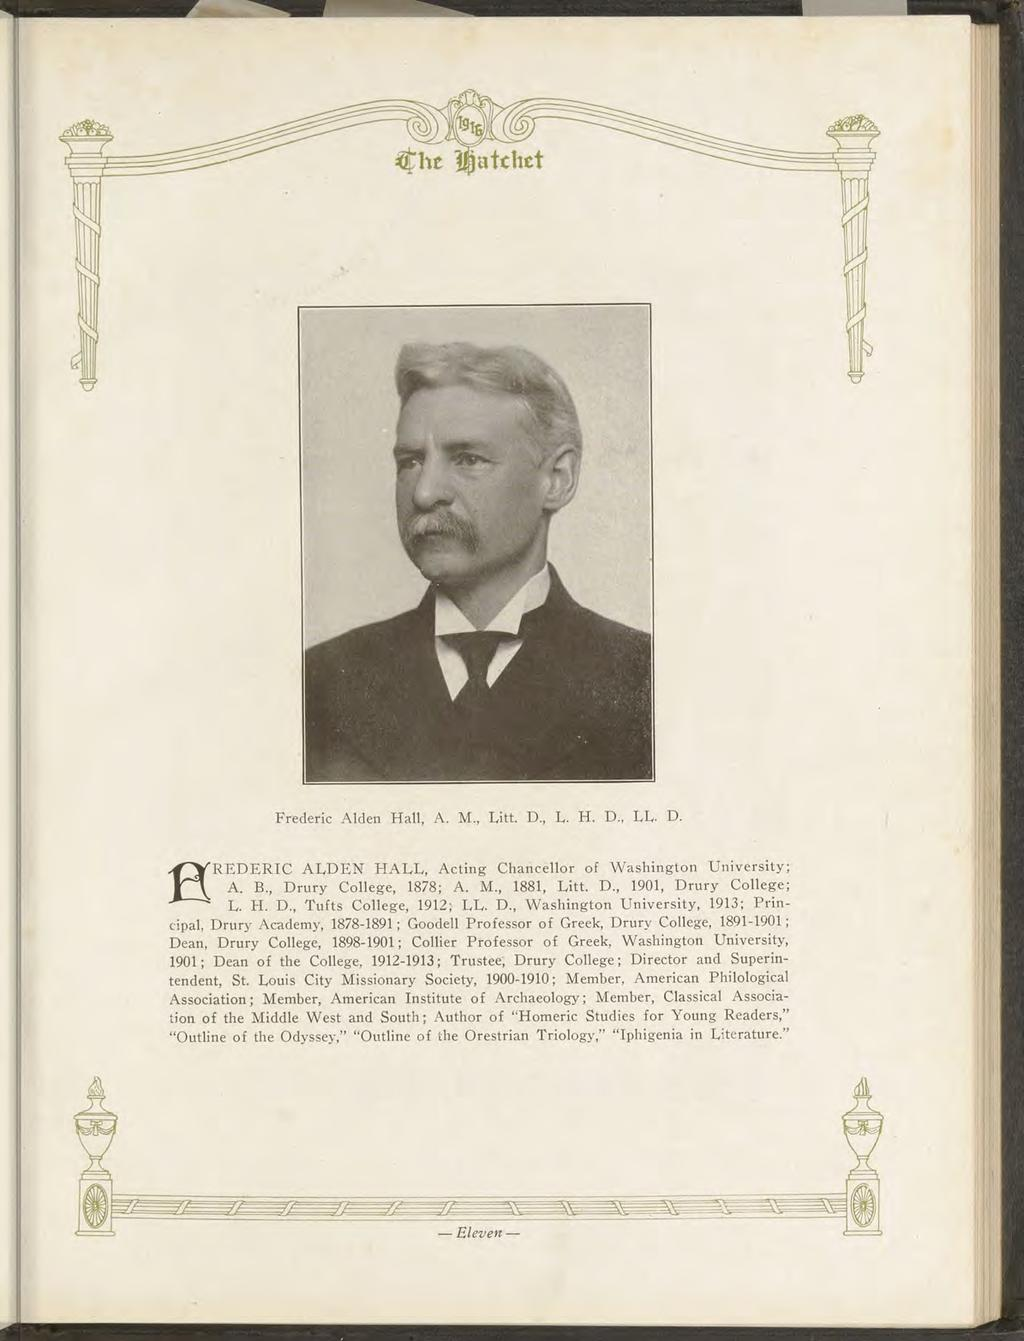 Frederic Alden Hall, A. M., Litt. D., L. H. D., LL. D. HREDERIC ALDEN HALL, Acting Chancellor of Washington University; A. B, Drury College, 1878; A. M., 1881, Litt. D., 1901, Drury College; L H. D., Tufts College, 1912; LL.